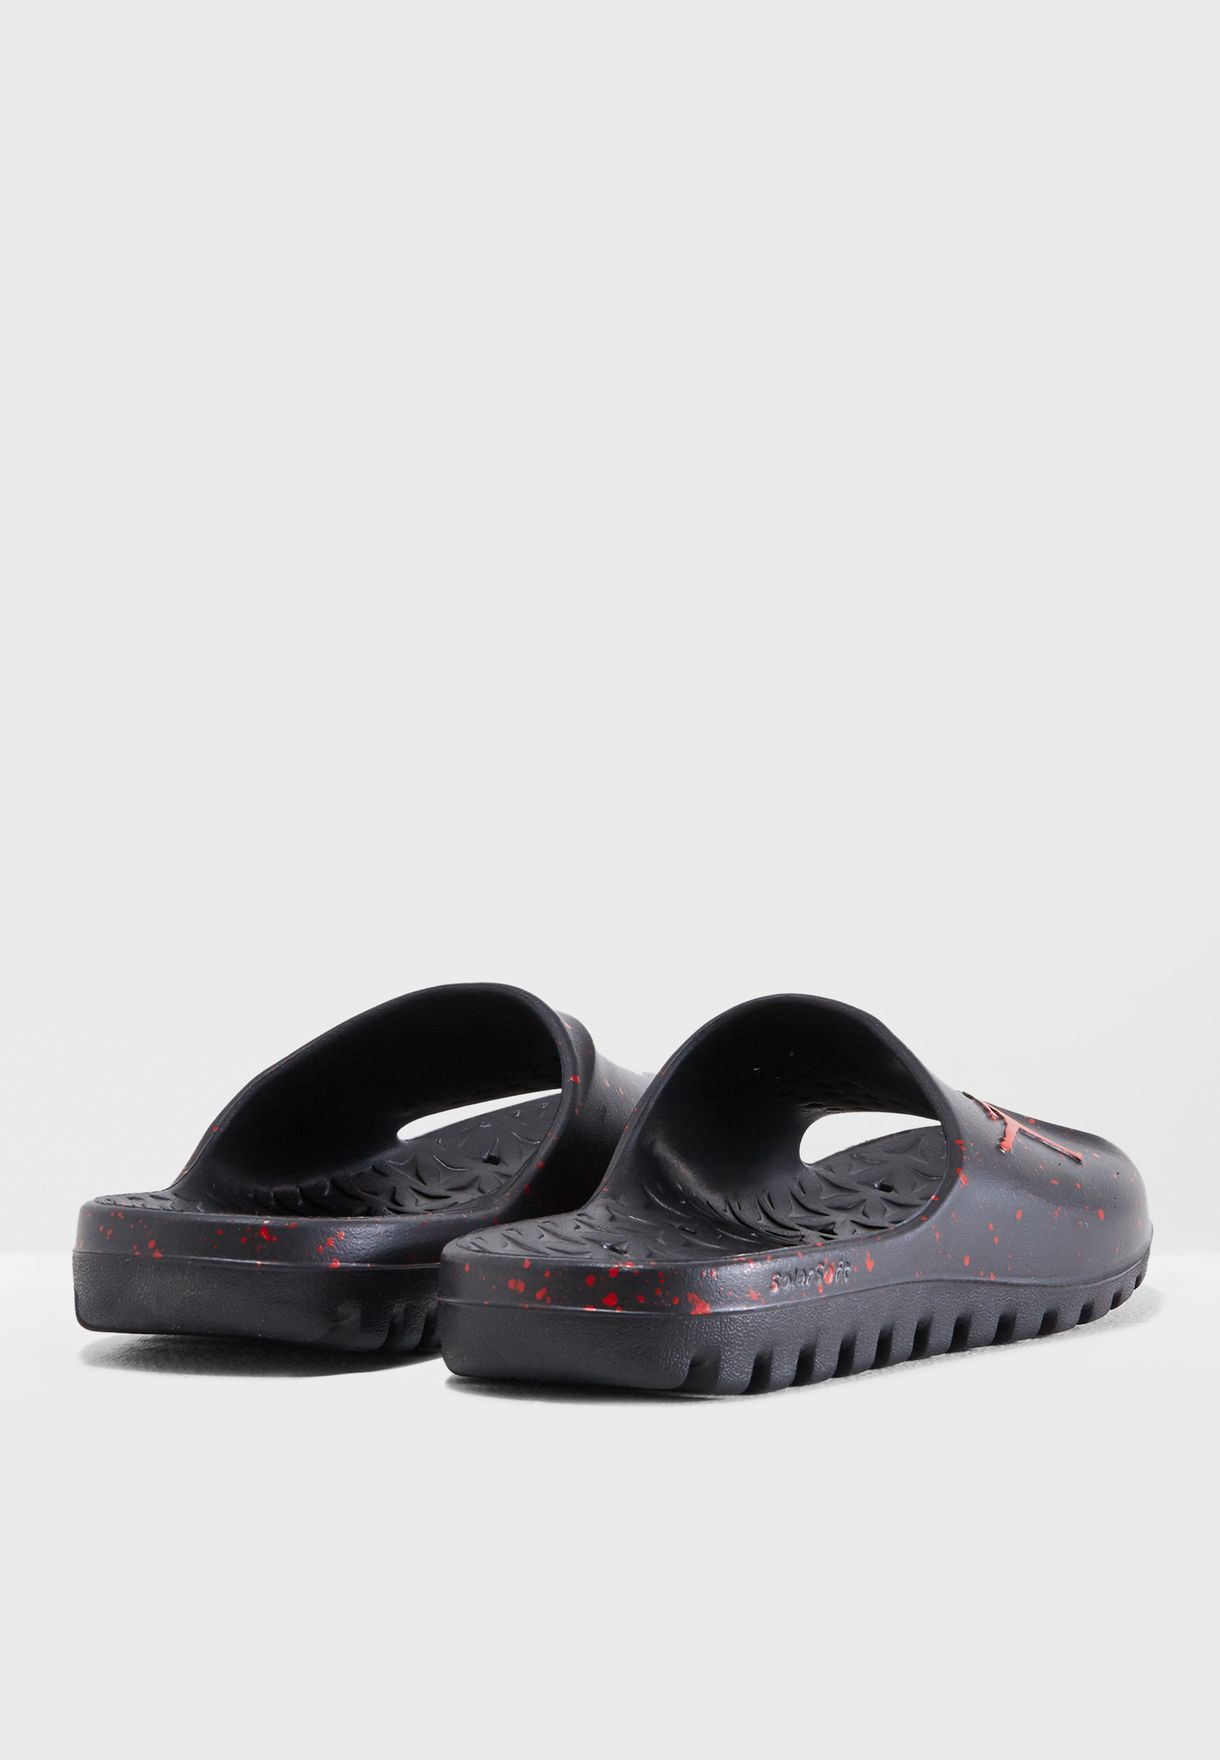 0e061cbb700 Shop Nike black Jordan Super Fly Team Slide 716985-062 for Men in ...